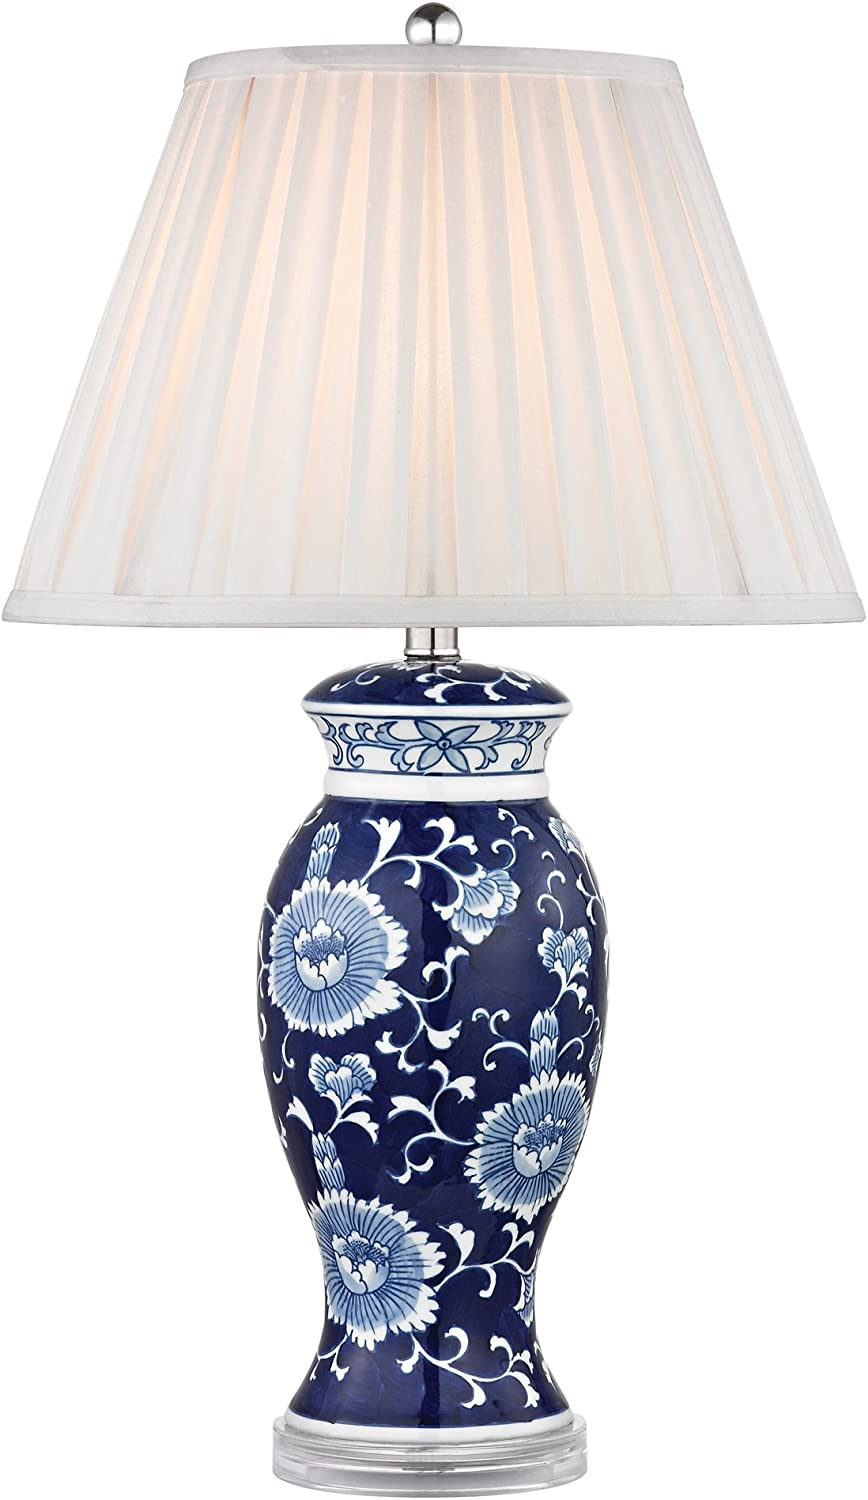 Dimond Lighting D2474 bluee and White Ceramic Table Lamp, Hand Painted, 16  x 16  x 28